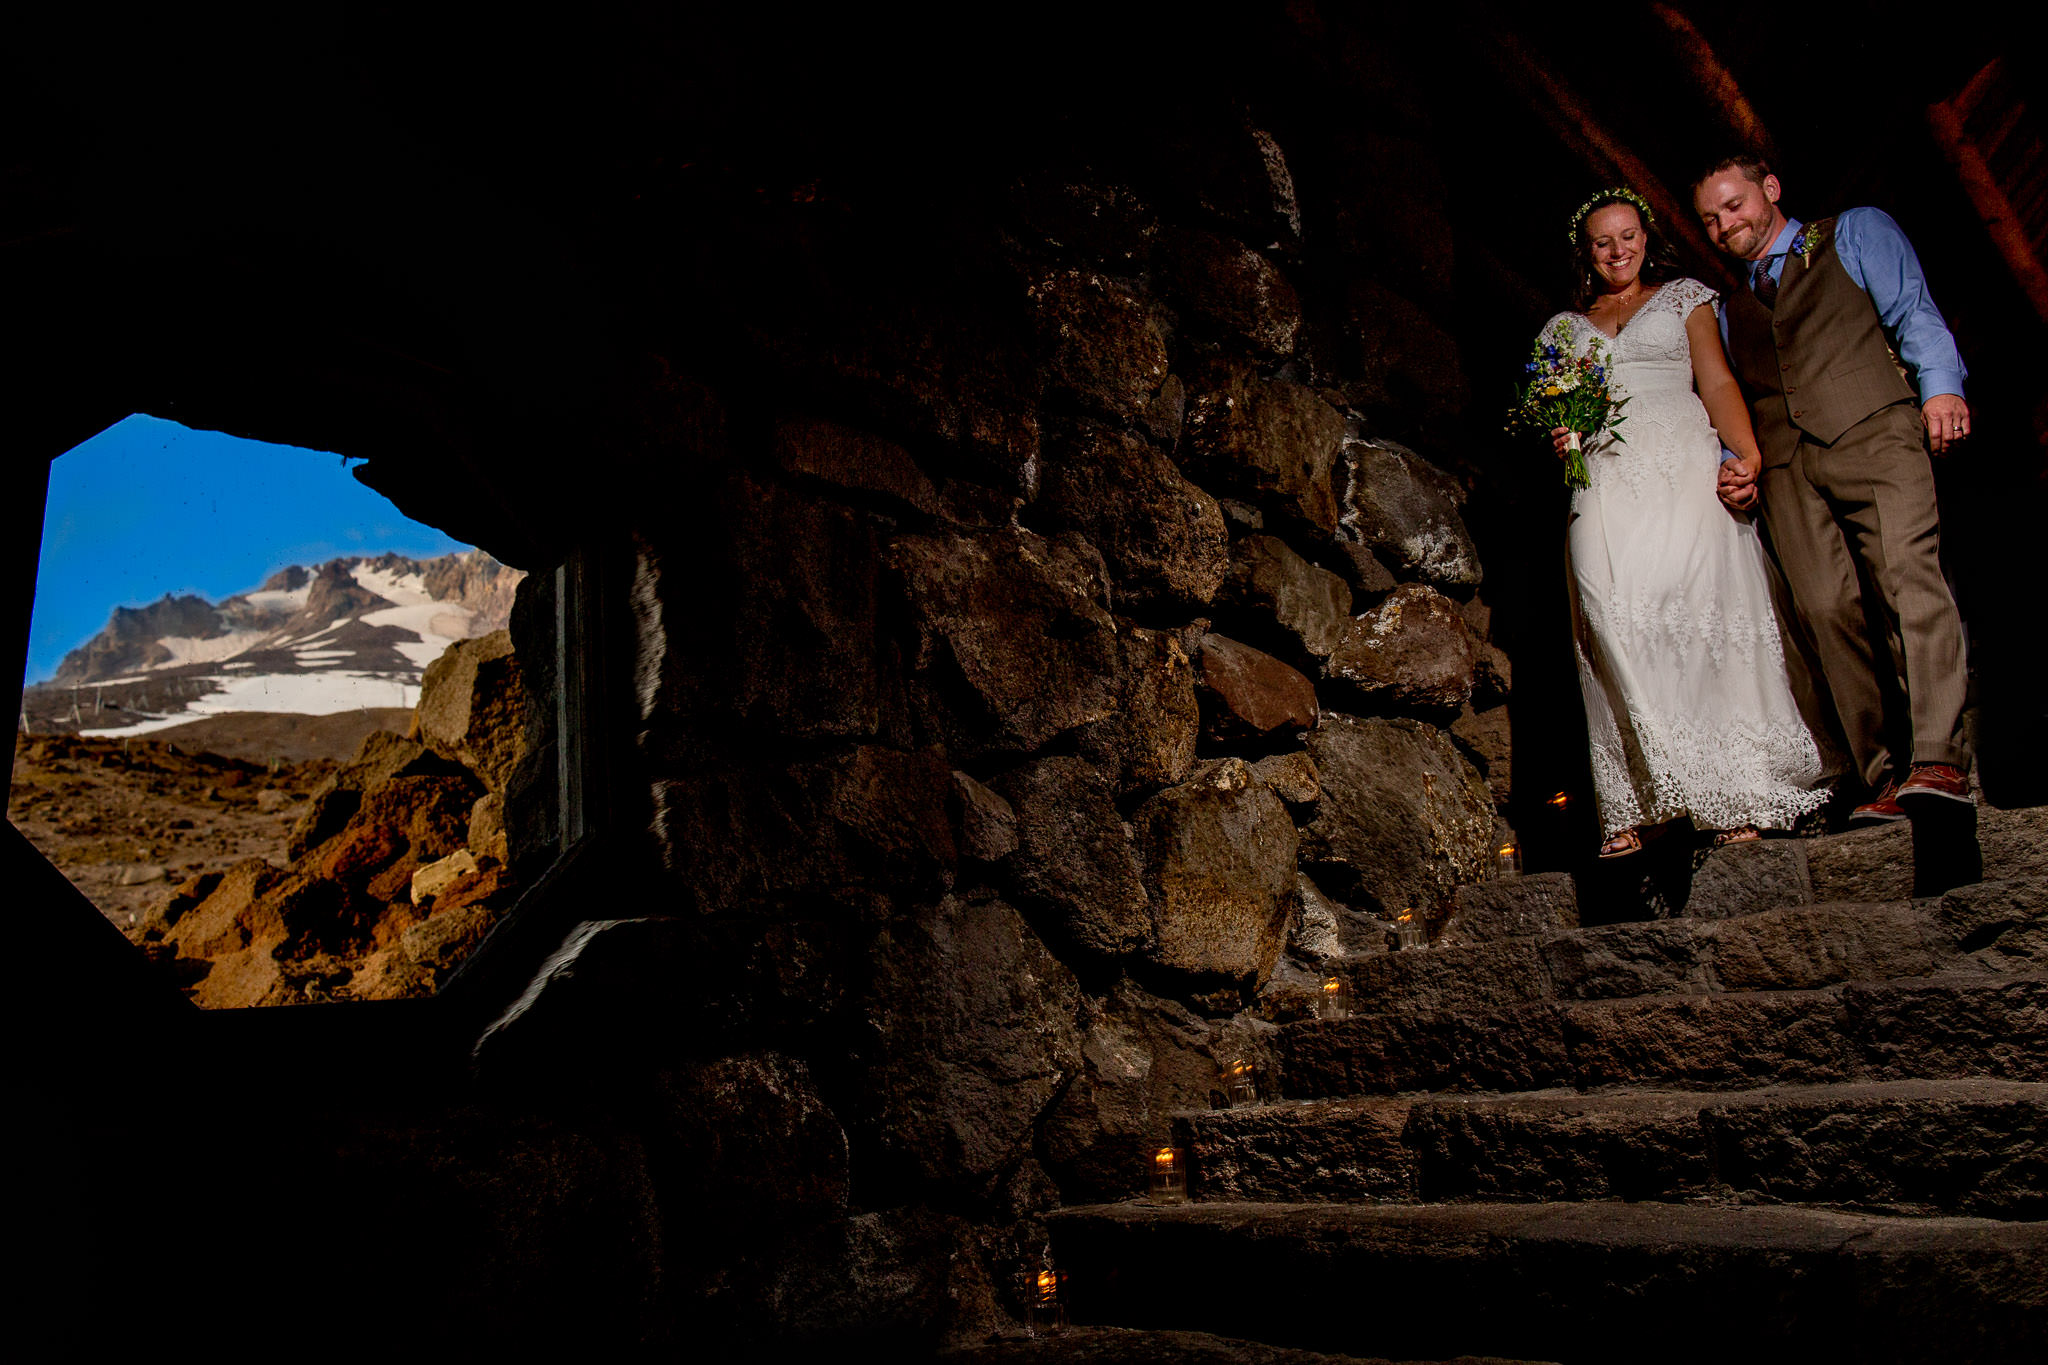 Bride and groom exiting Silcox Hut ceremony down stone staircase